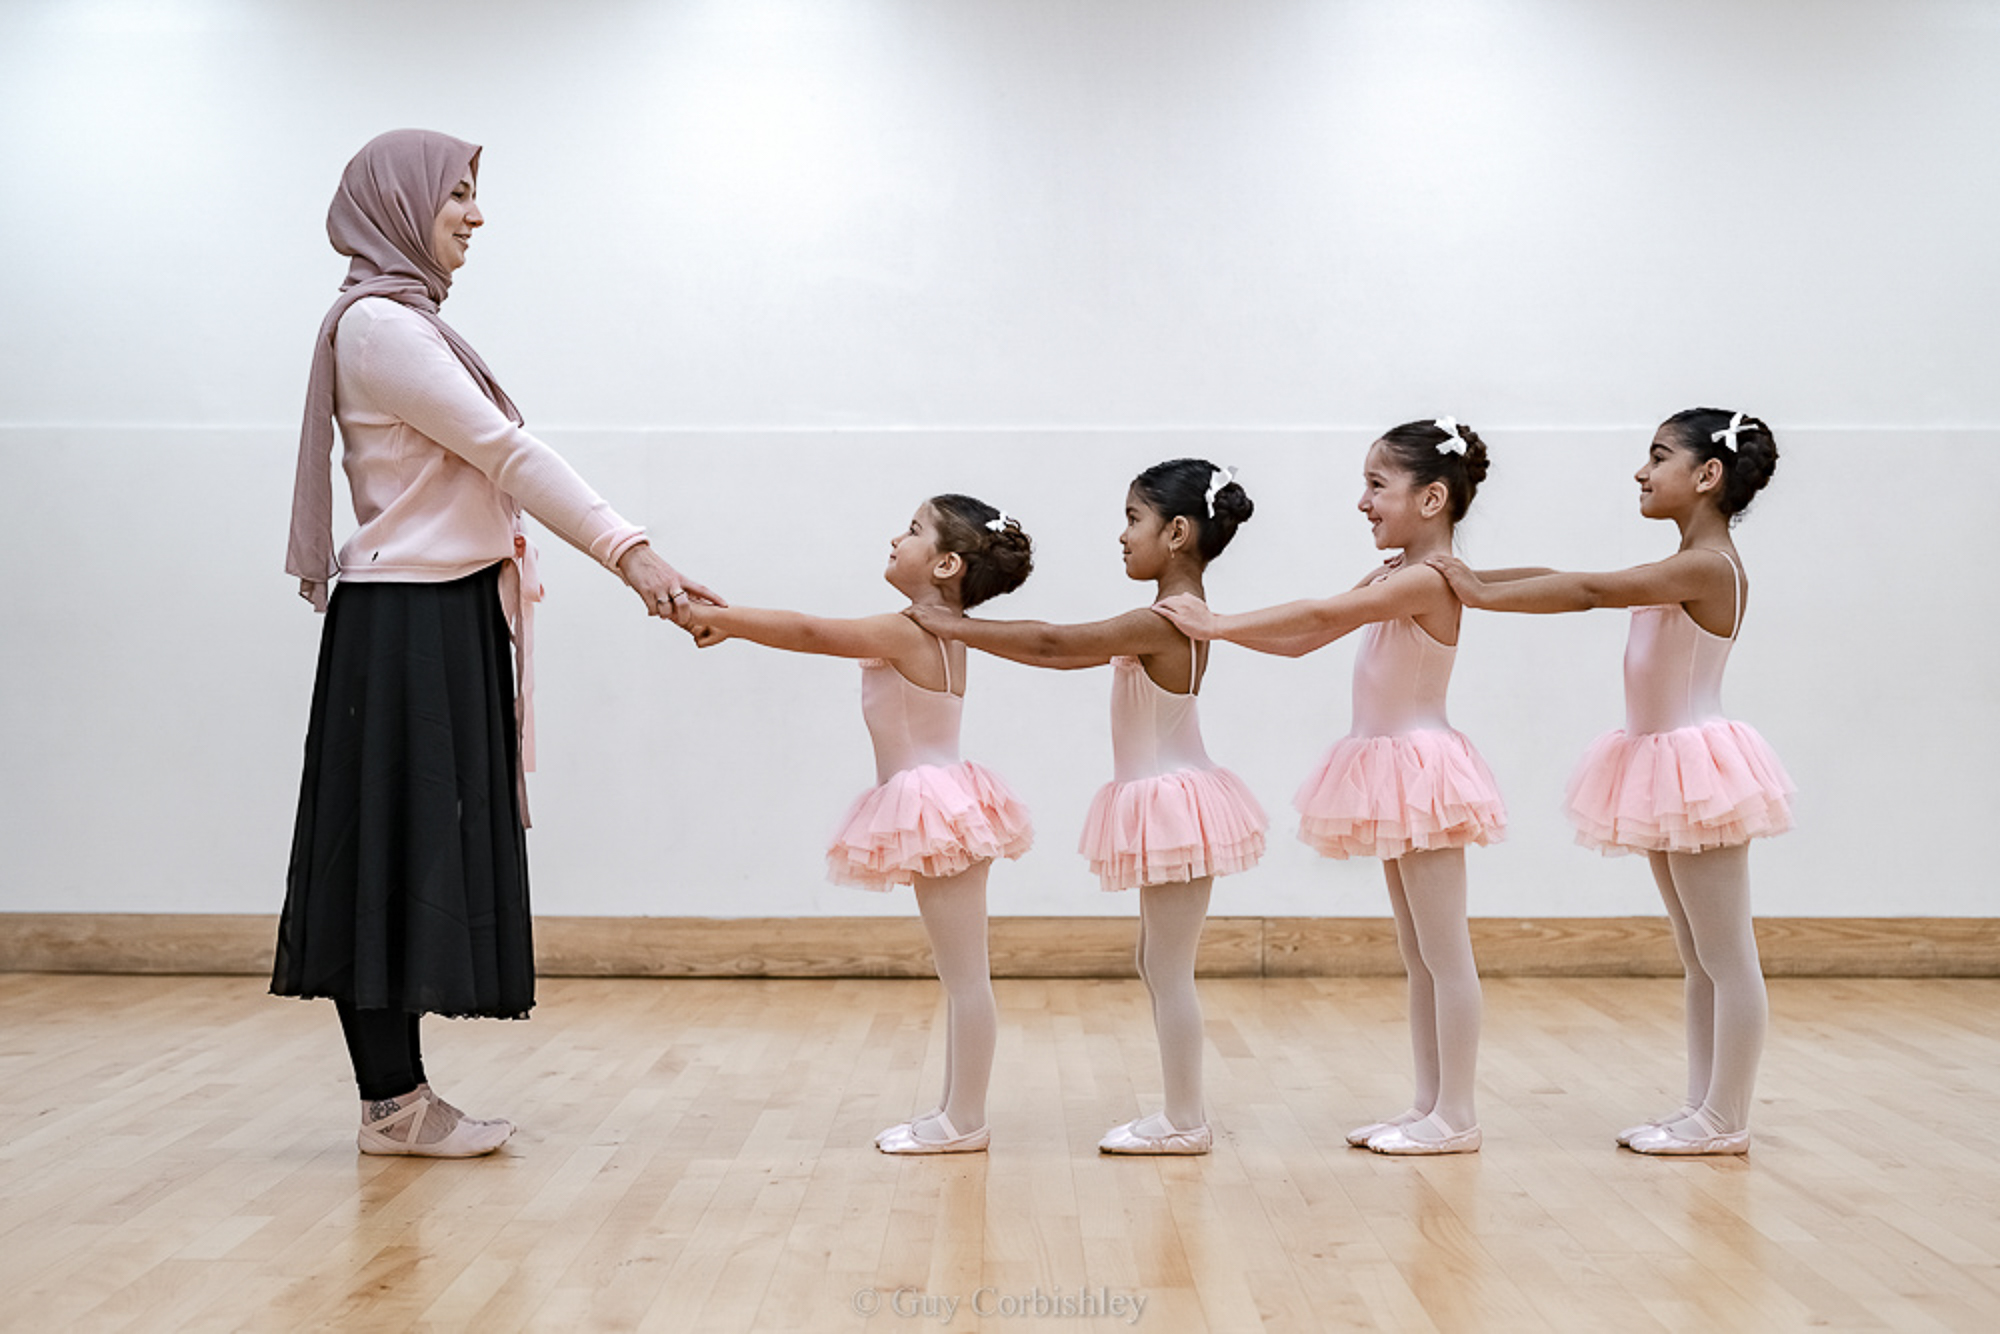 Grace and poise muslim ballet